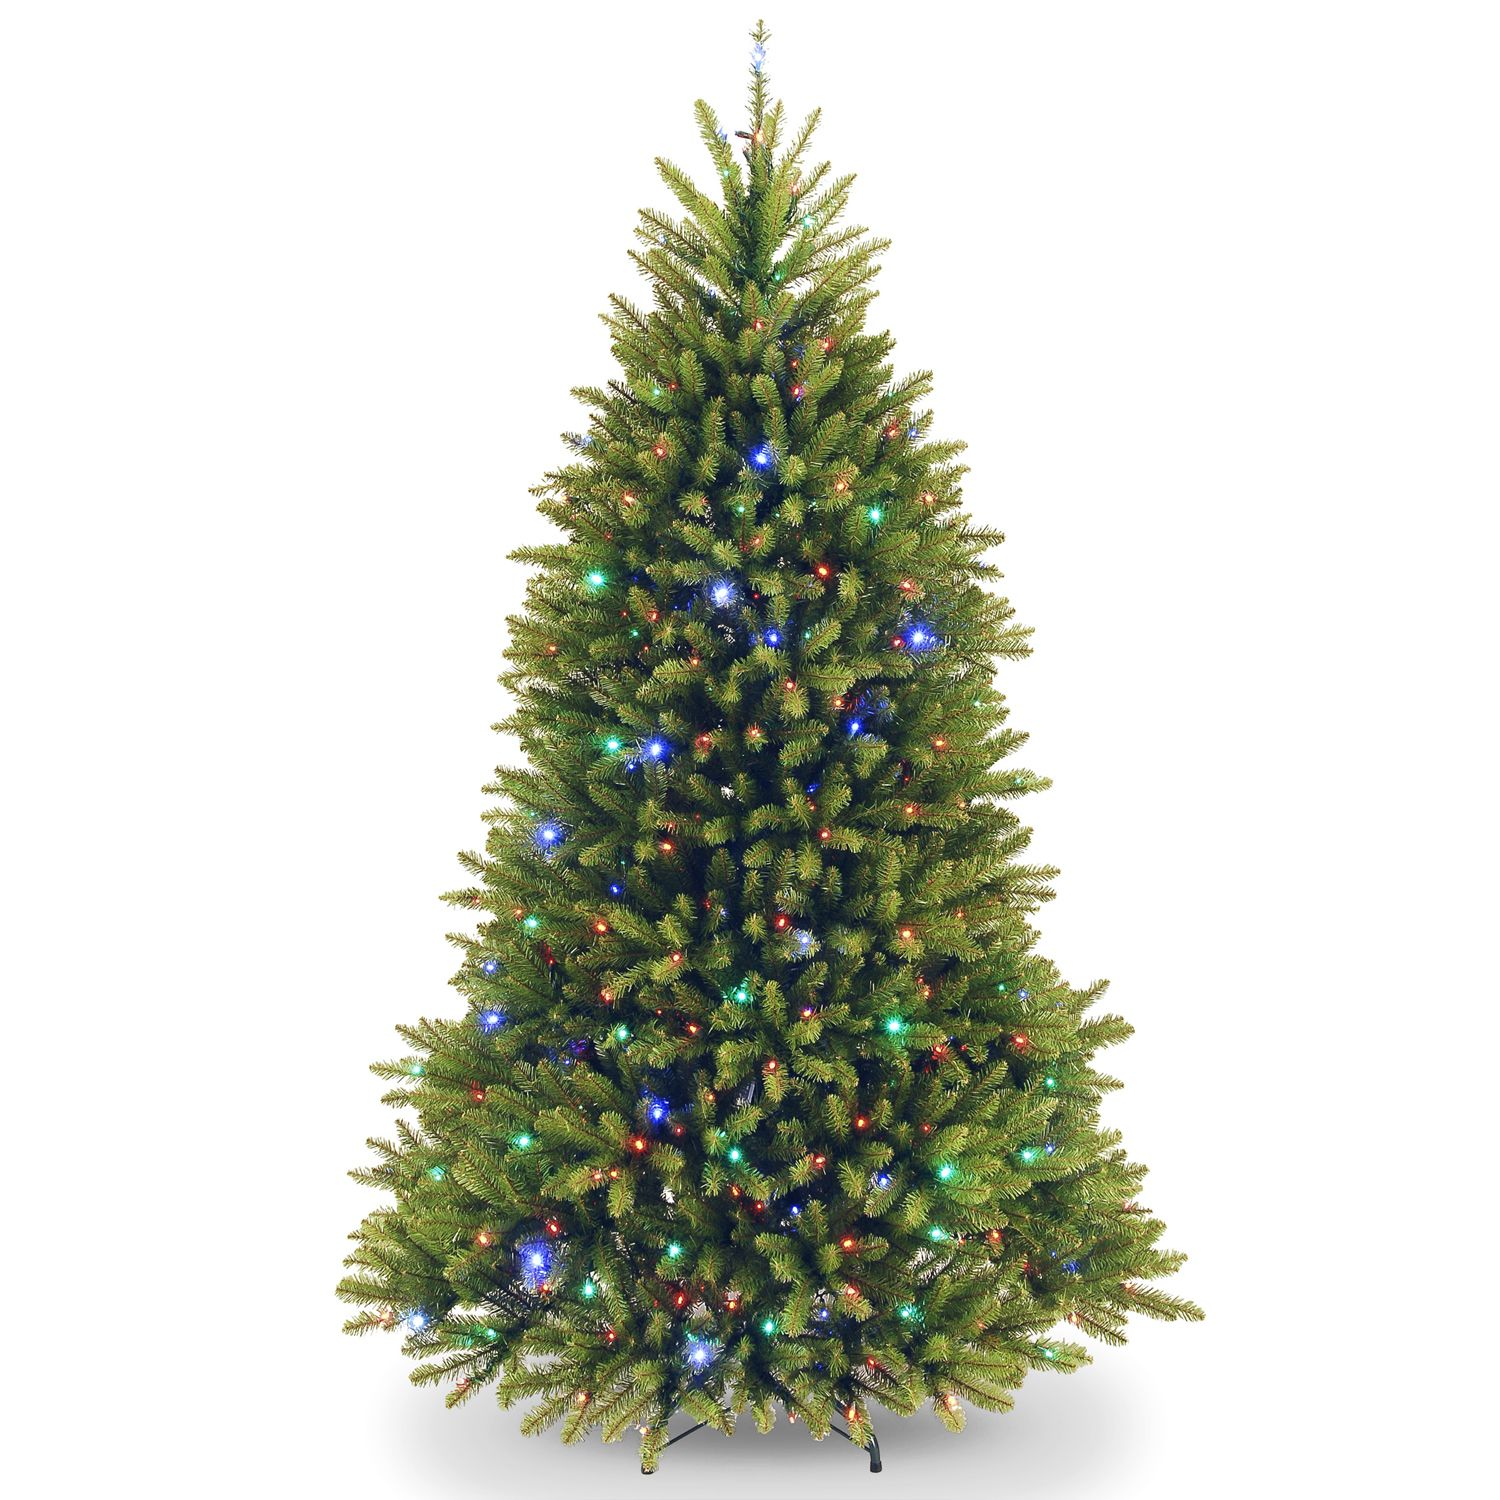 Pre-lit Christmas Trees - Home Decor | Kohl\'s